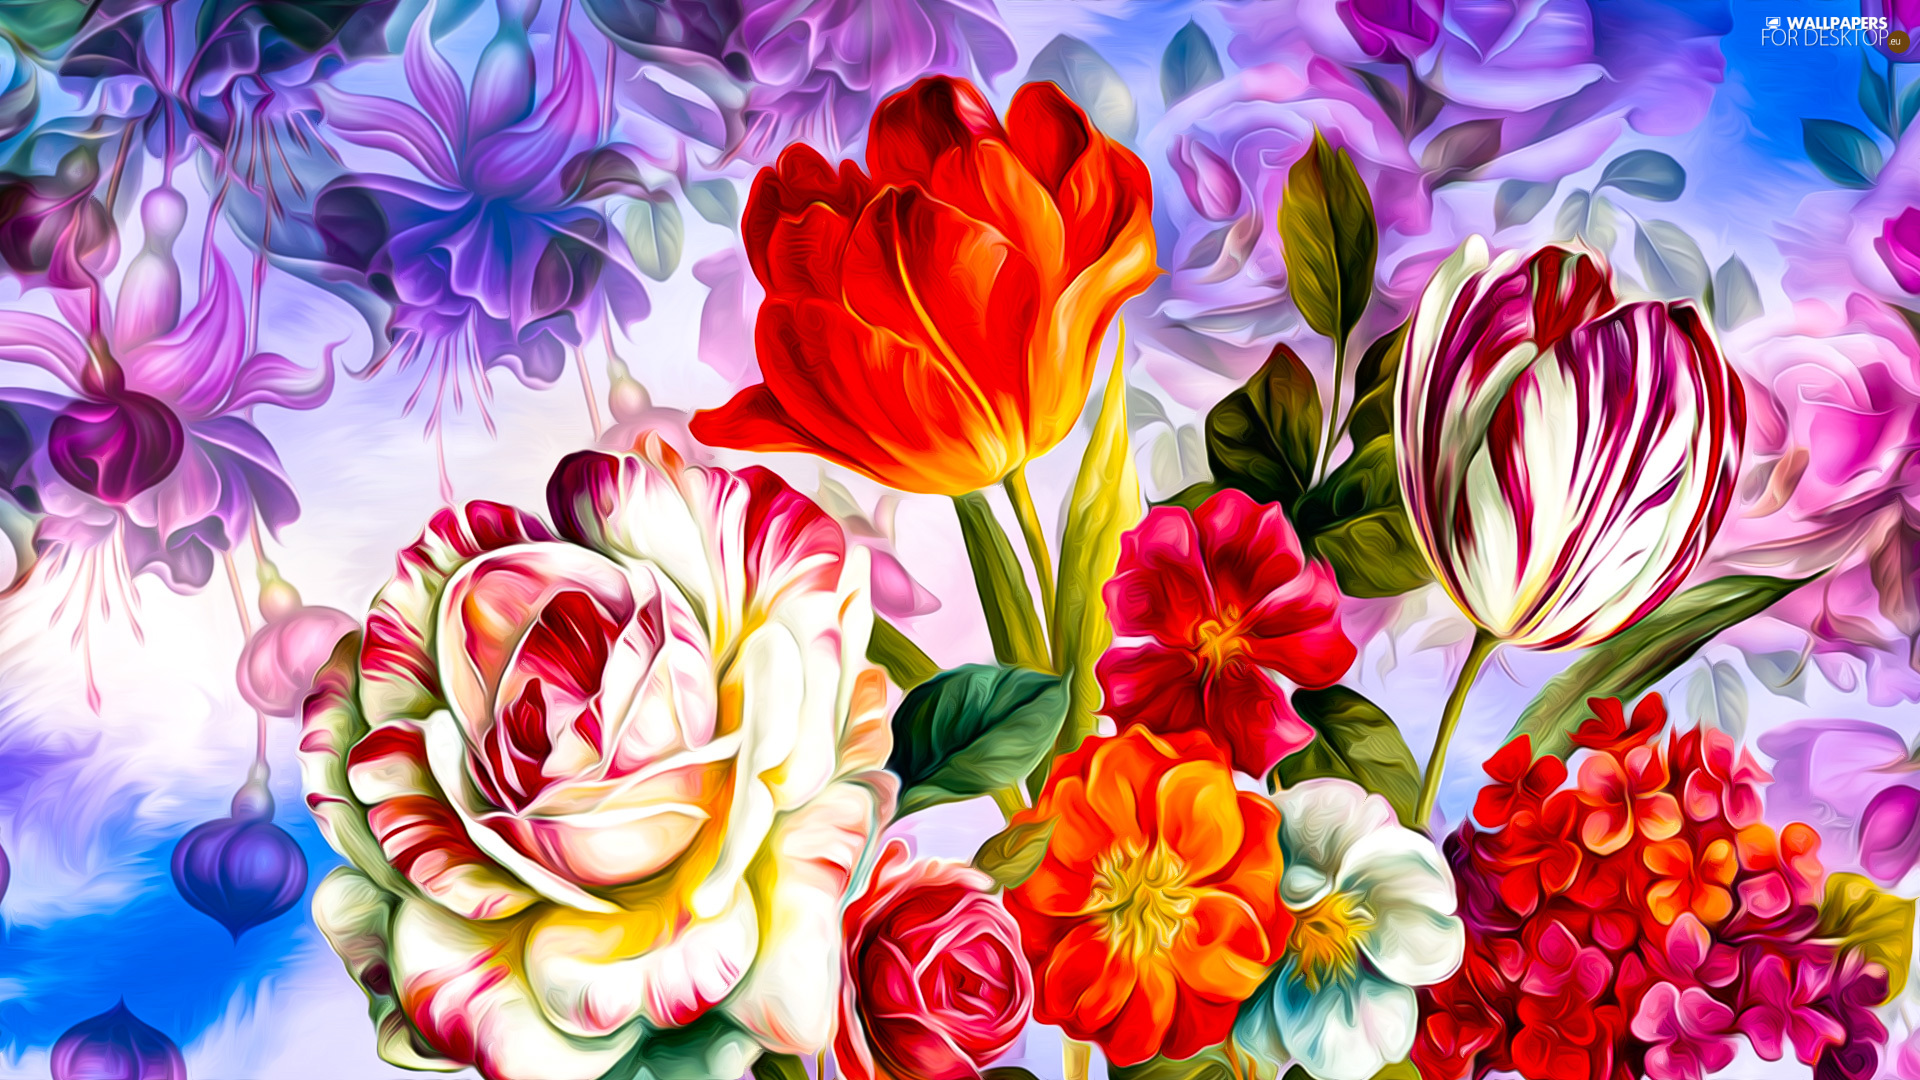 Flowers, Tulips, graphics, rose